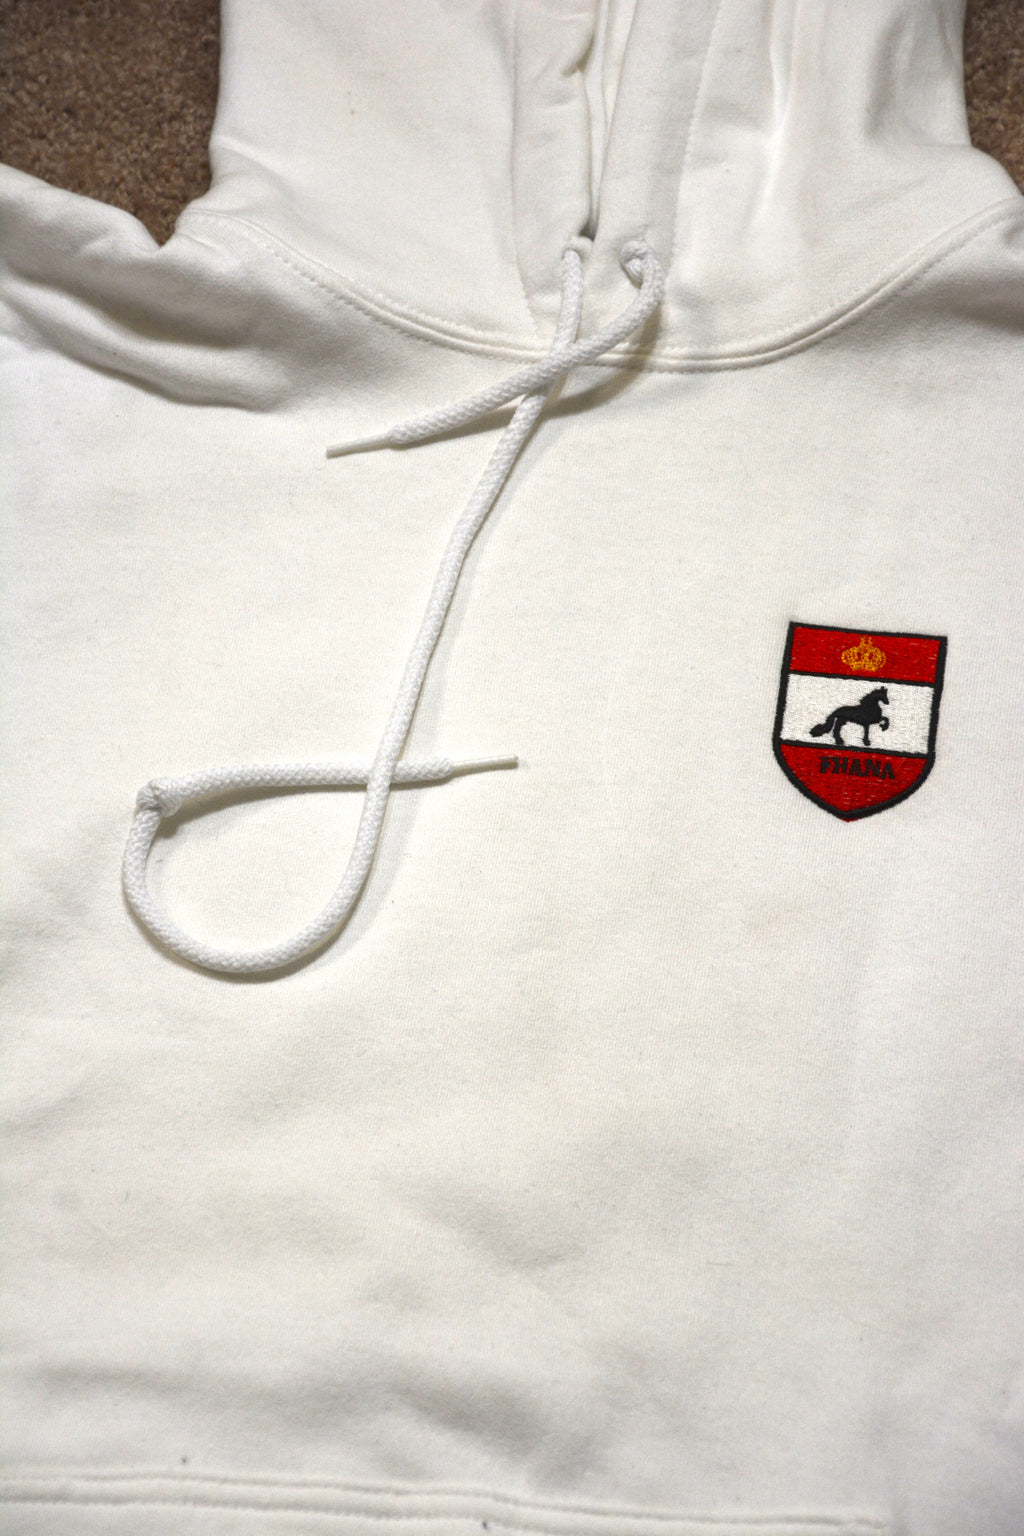 Hooded Sweatshirt with Classic FHANA Logo